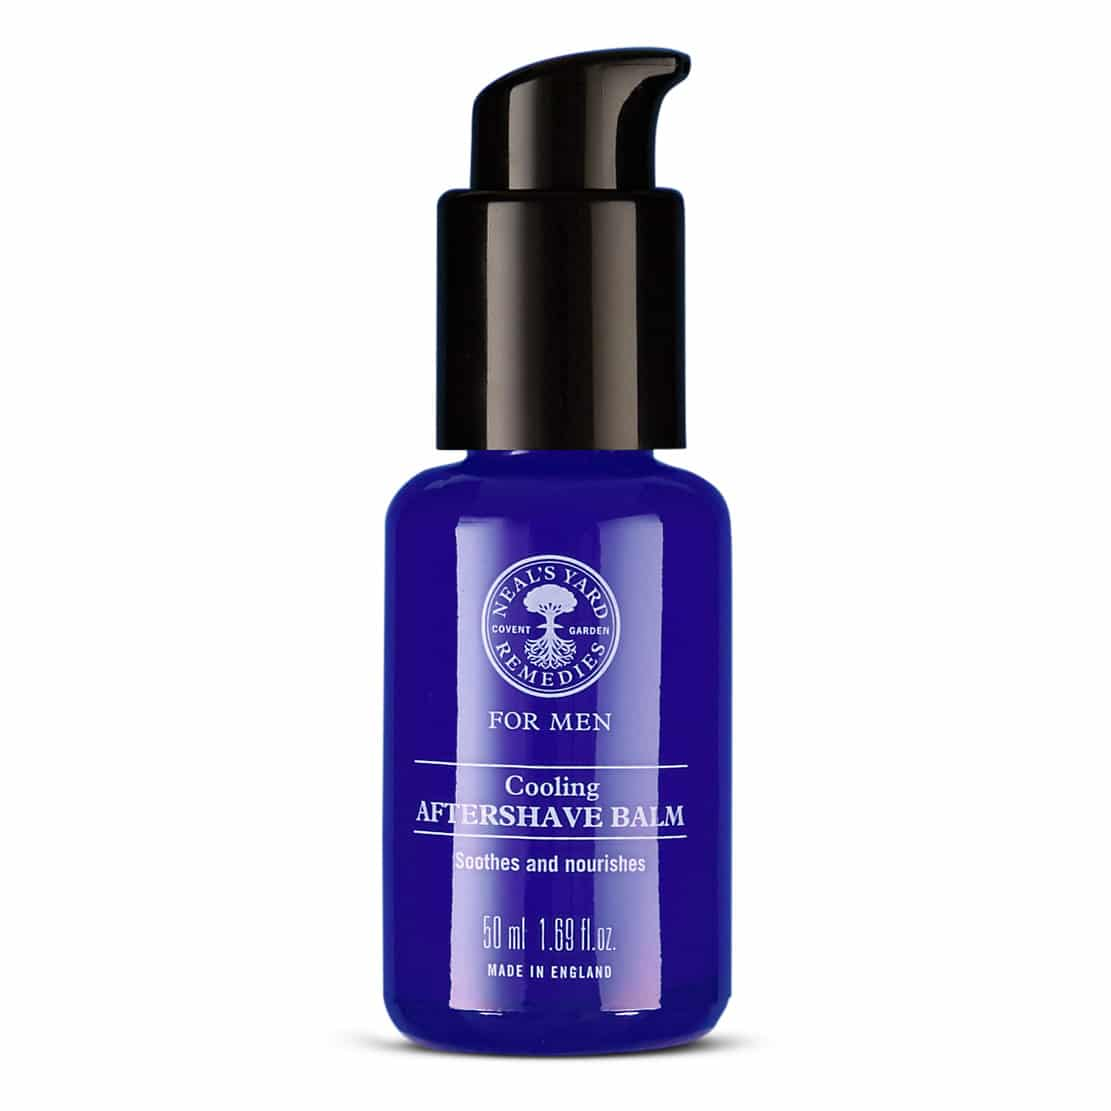 Neal's Yard Remedies For Men Cooling After-Shave Balm 50ml